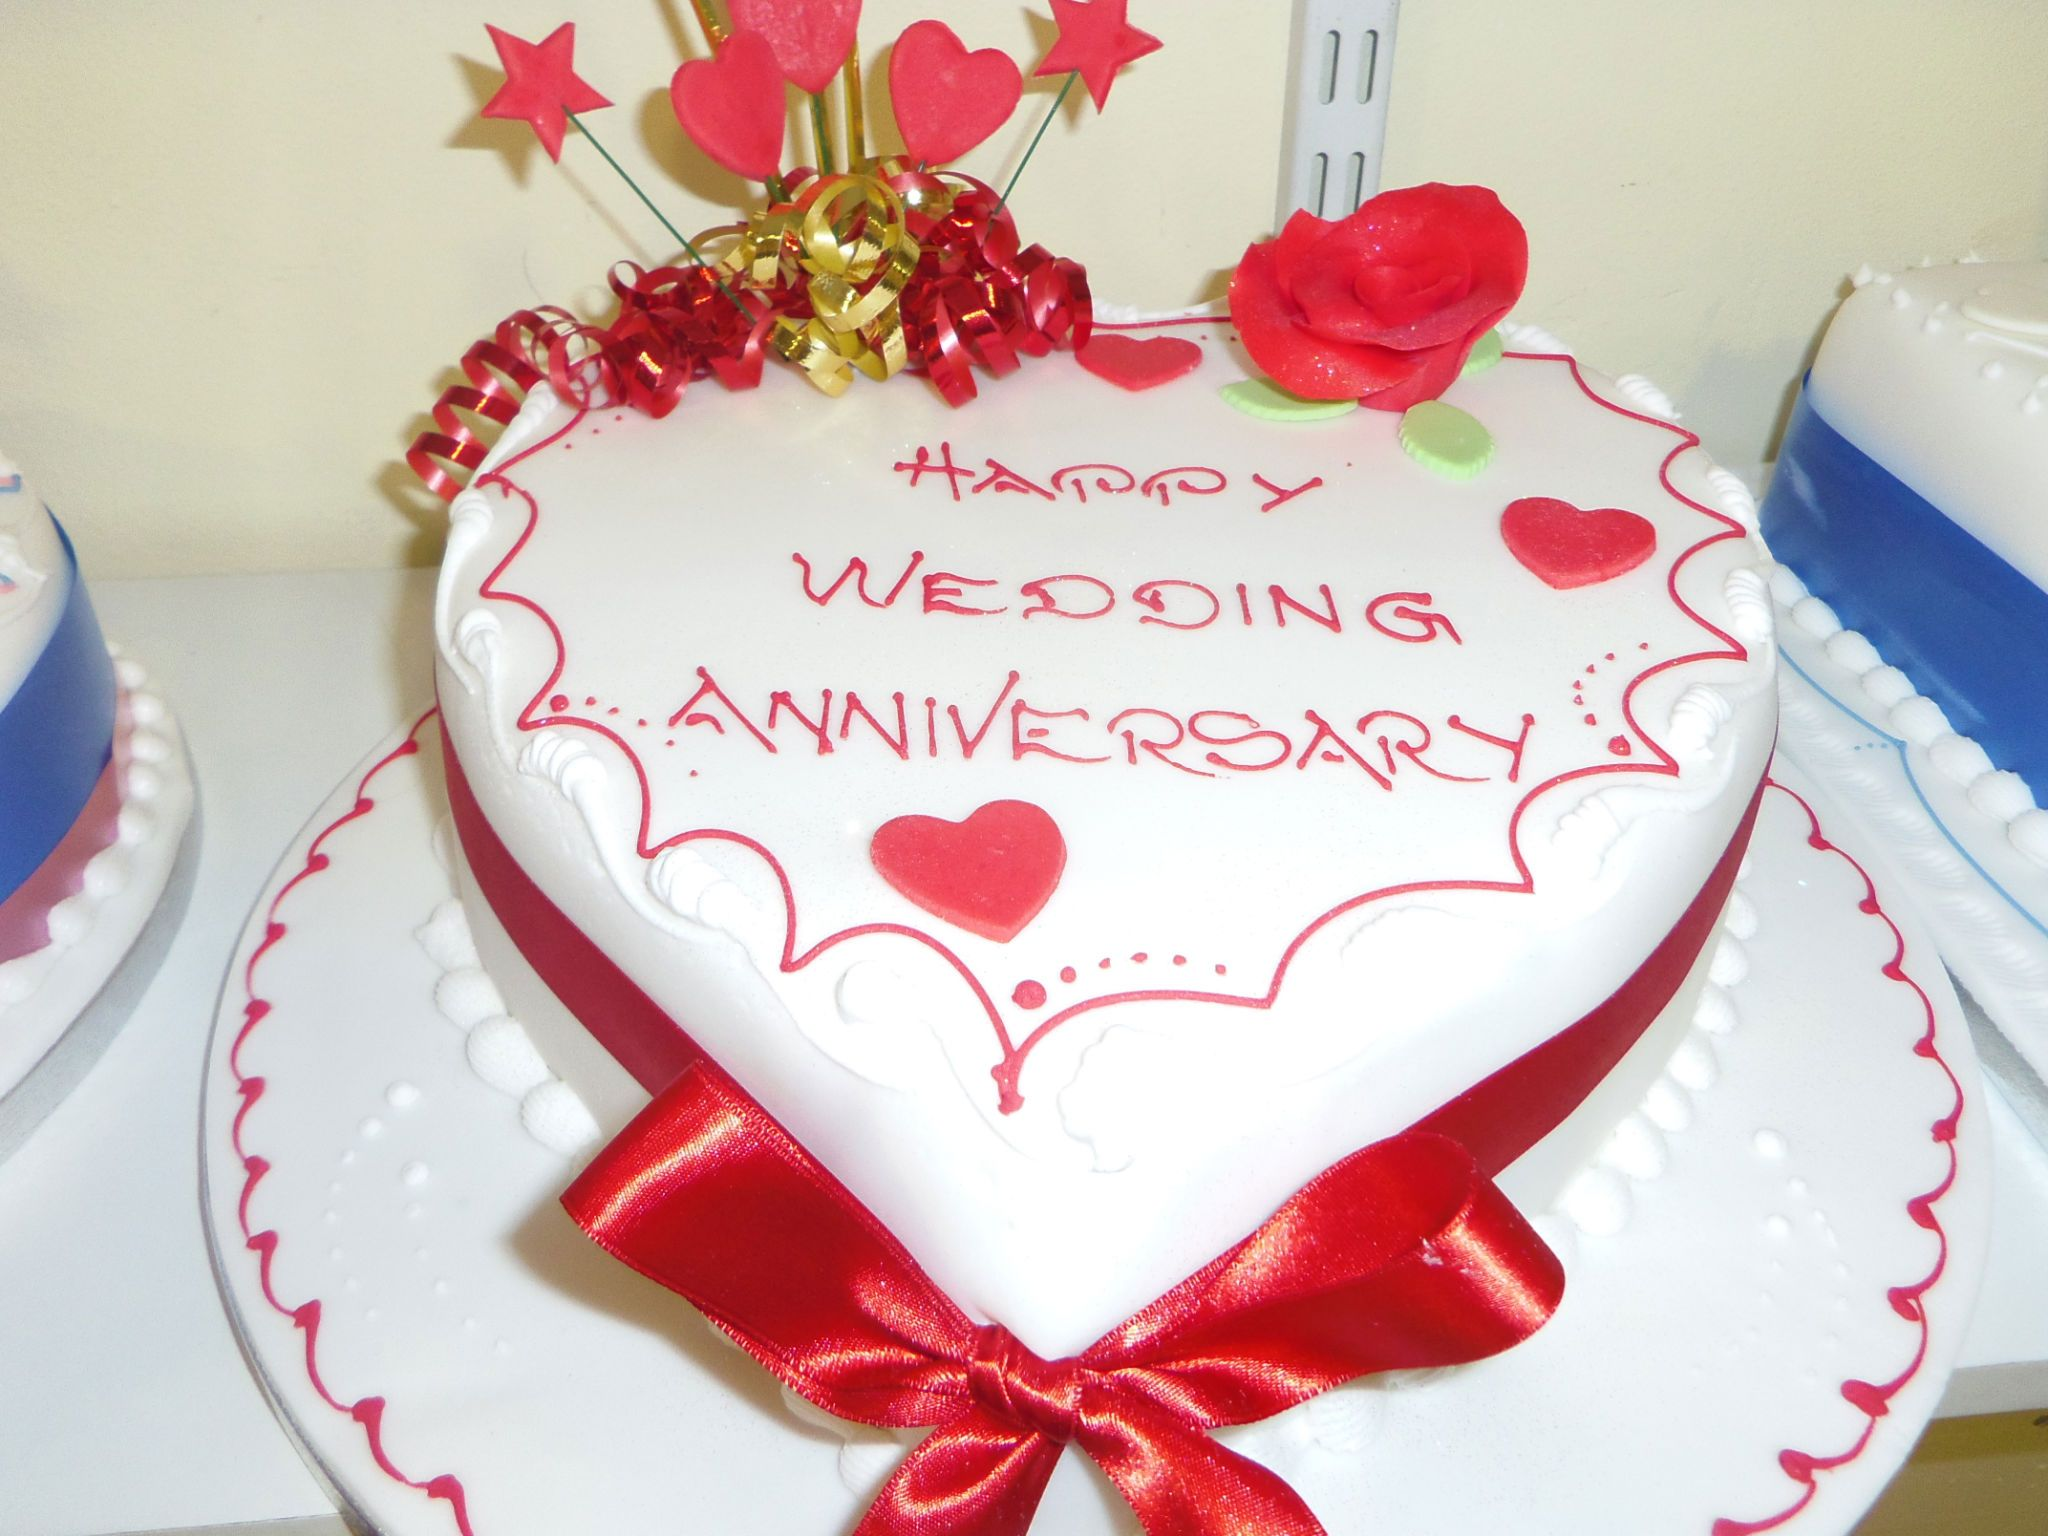 Both the couples cut the cake and pray that happiness remained in